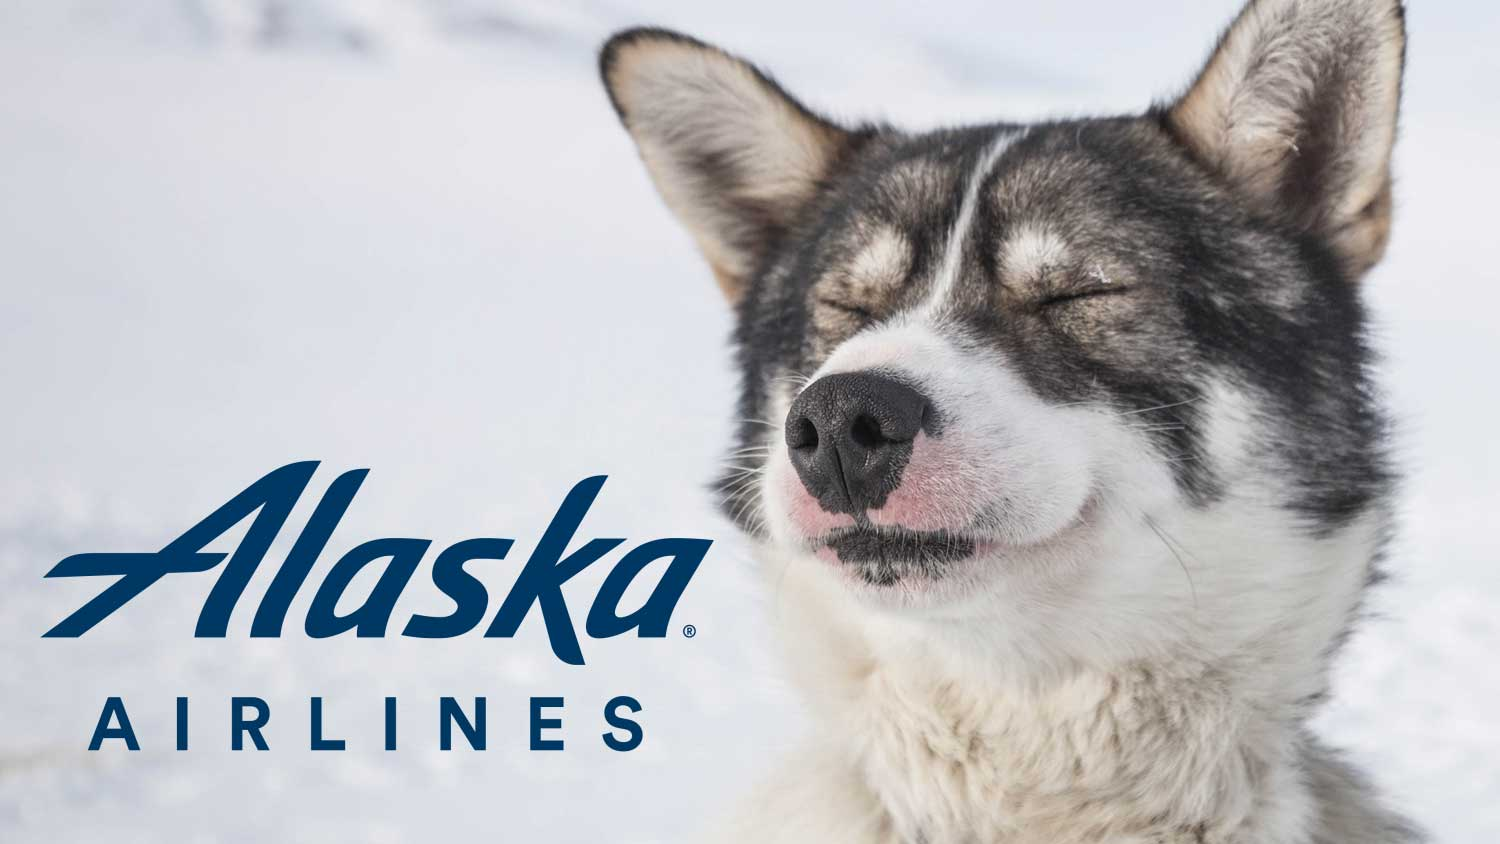 Following new DOT rules, Alaska updates its policy on service animals onboard.